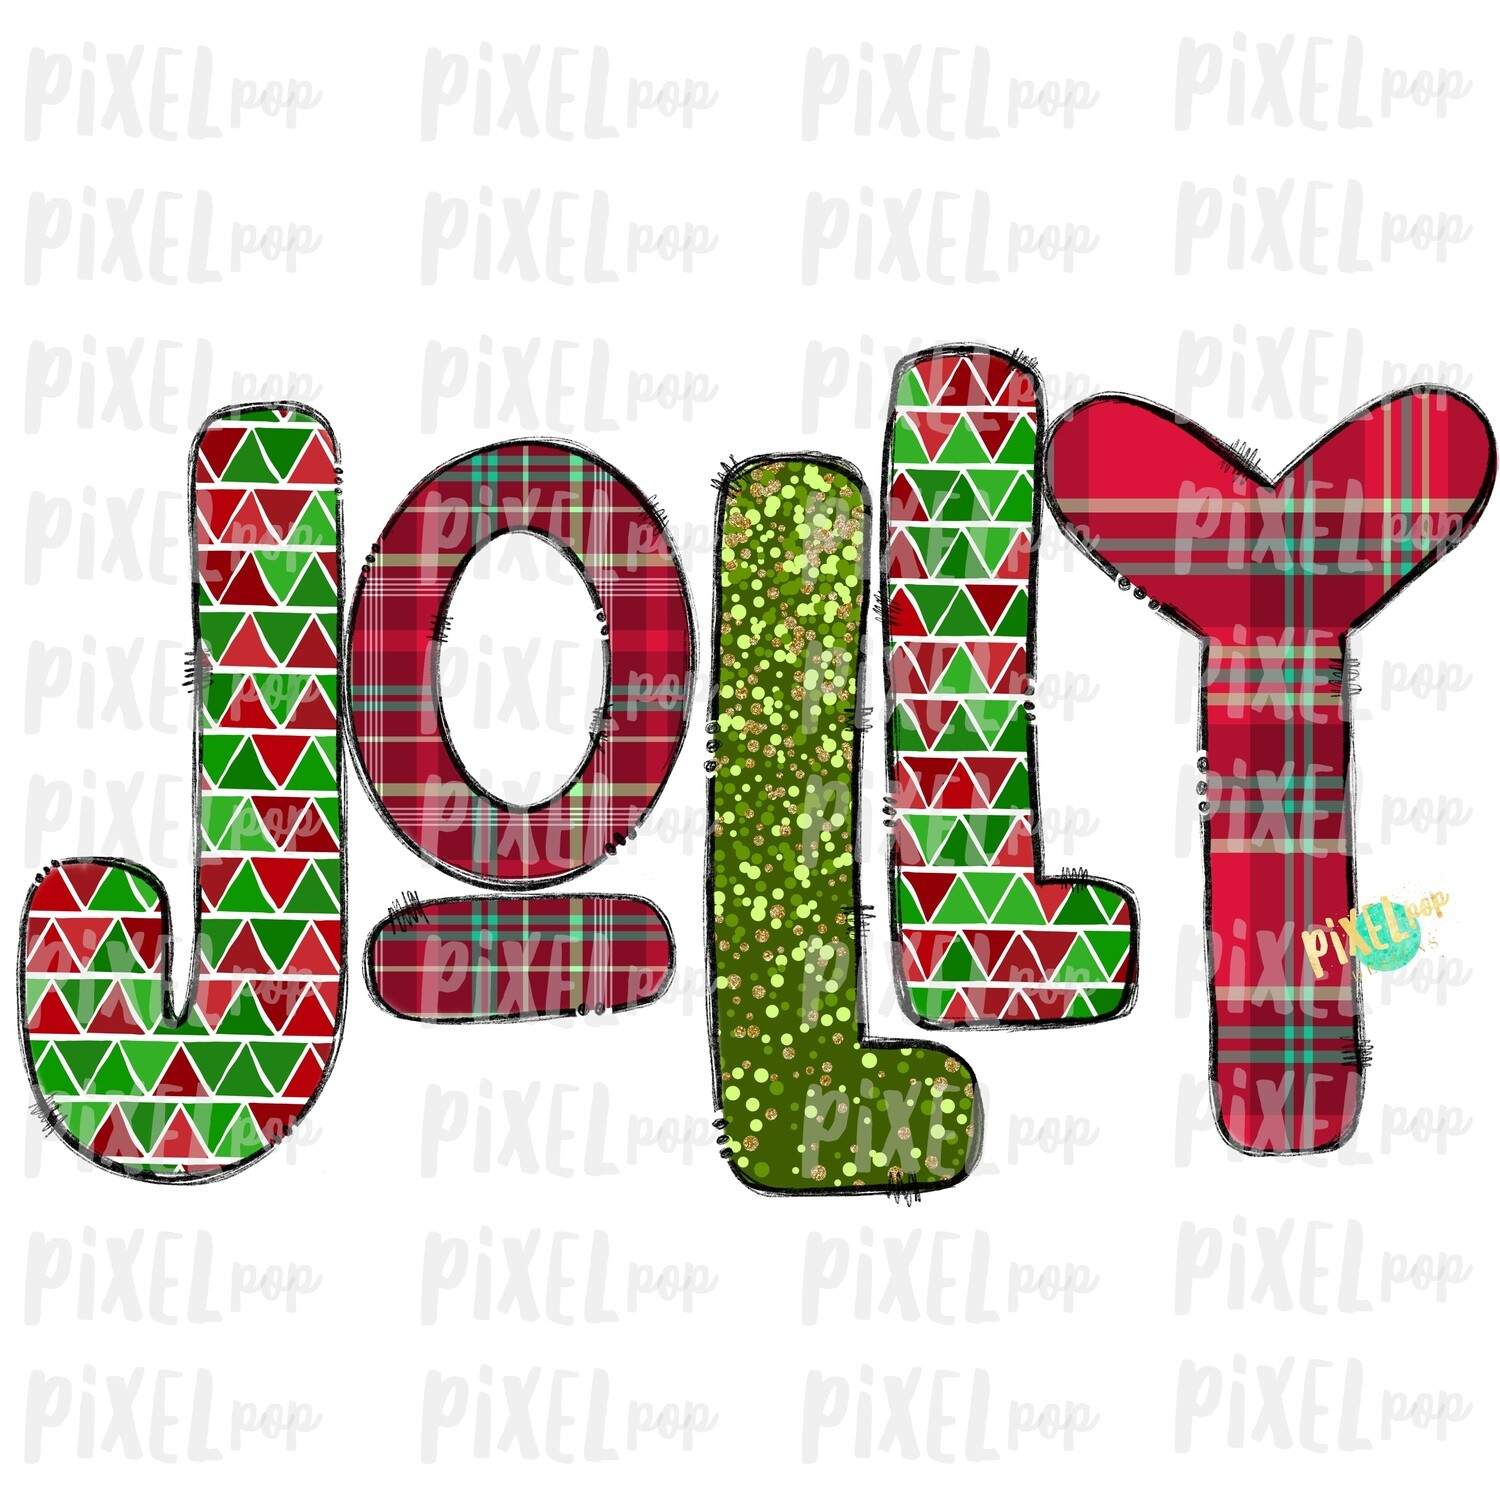 Jolly Christmas Plaid Patterened Word Sublimation PNG | Tree Farm Art | Hand Drawn Design | Digital Download | Printable Artwork | Art